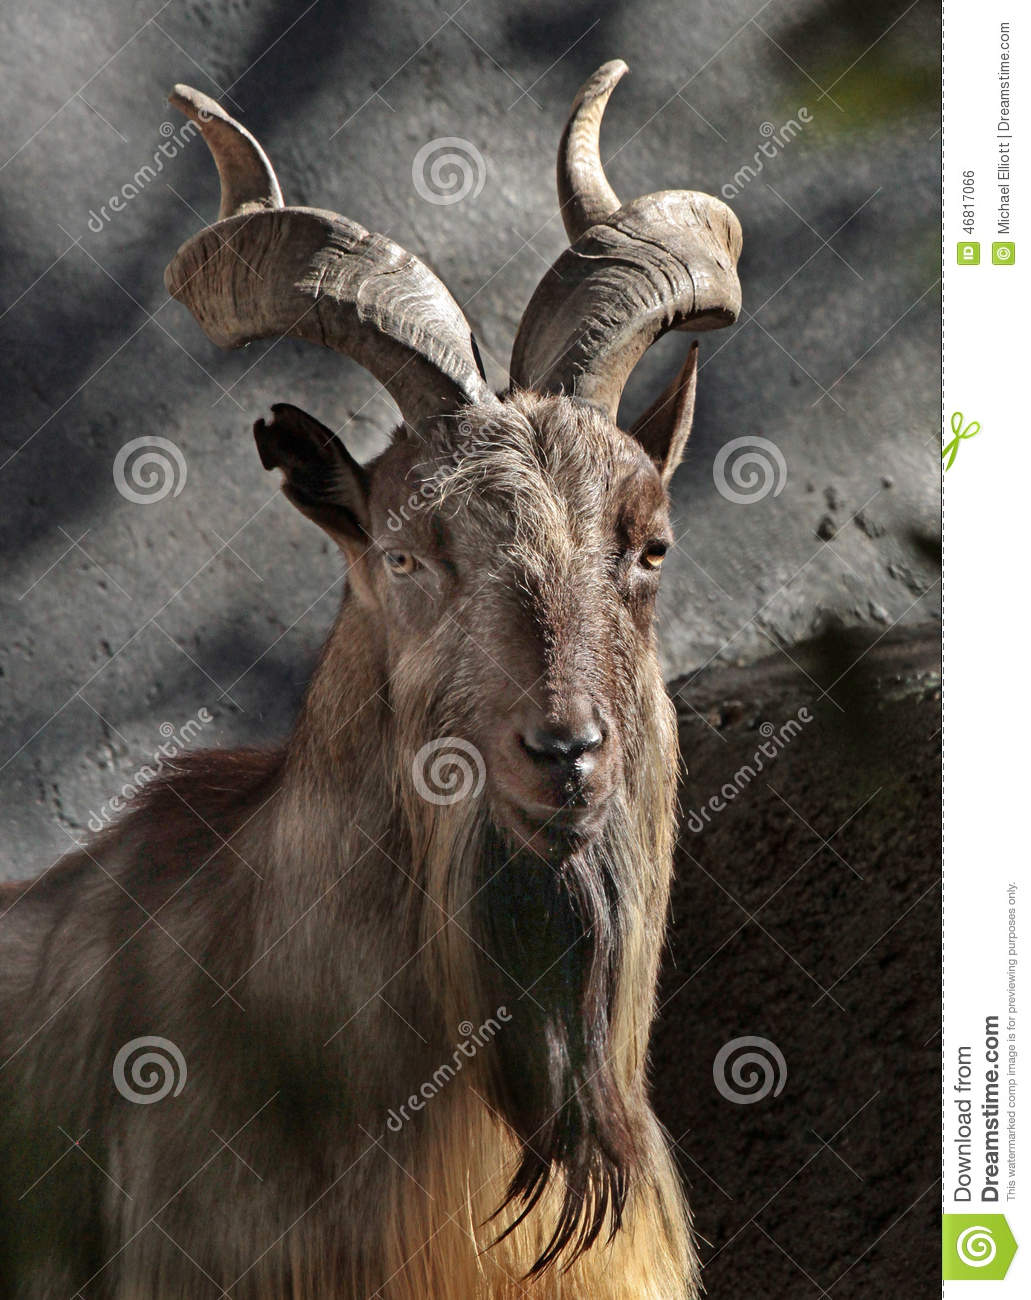 Asian mt goat